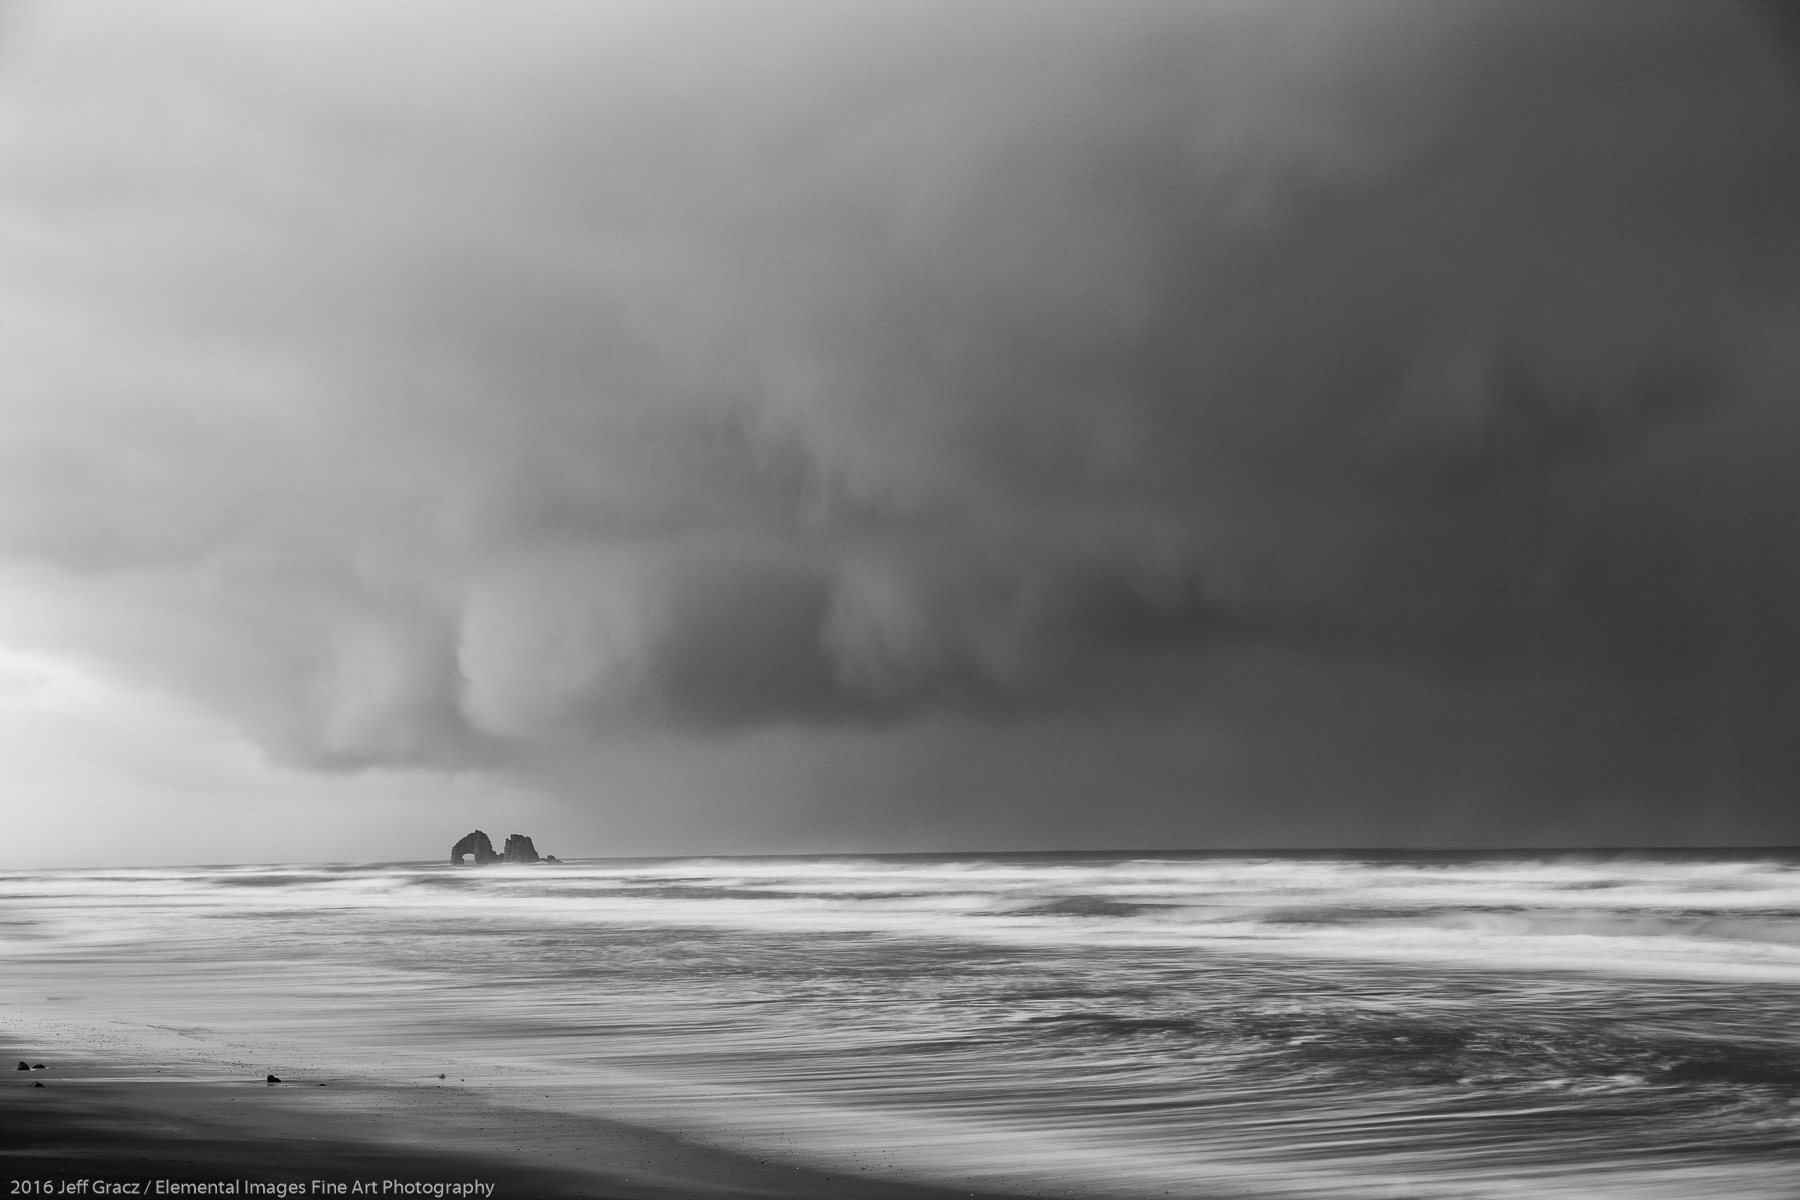 Twin Rocks, incoming squall | Rockaway Beach | OR | USA - © 2016 Jeff Gracz / Elemental Images Fine Art Photography - All Rights Reserved Worldwide